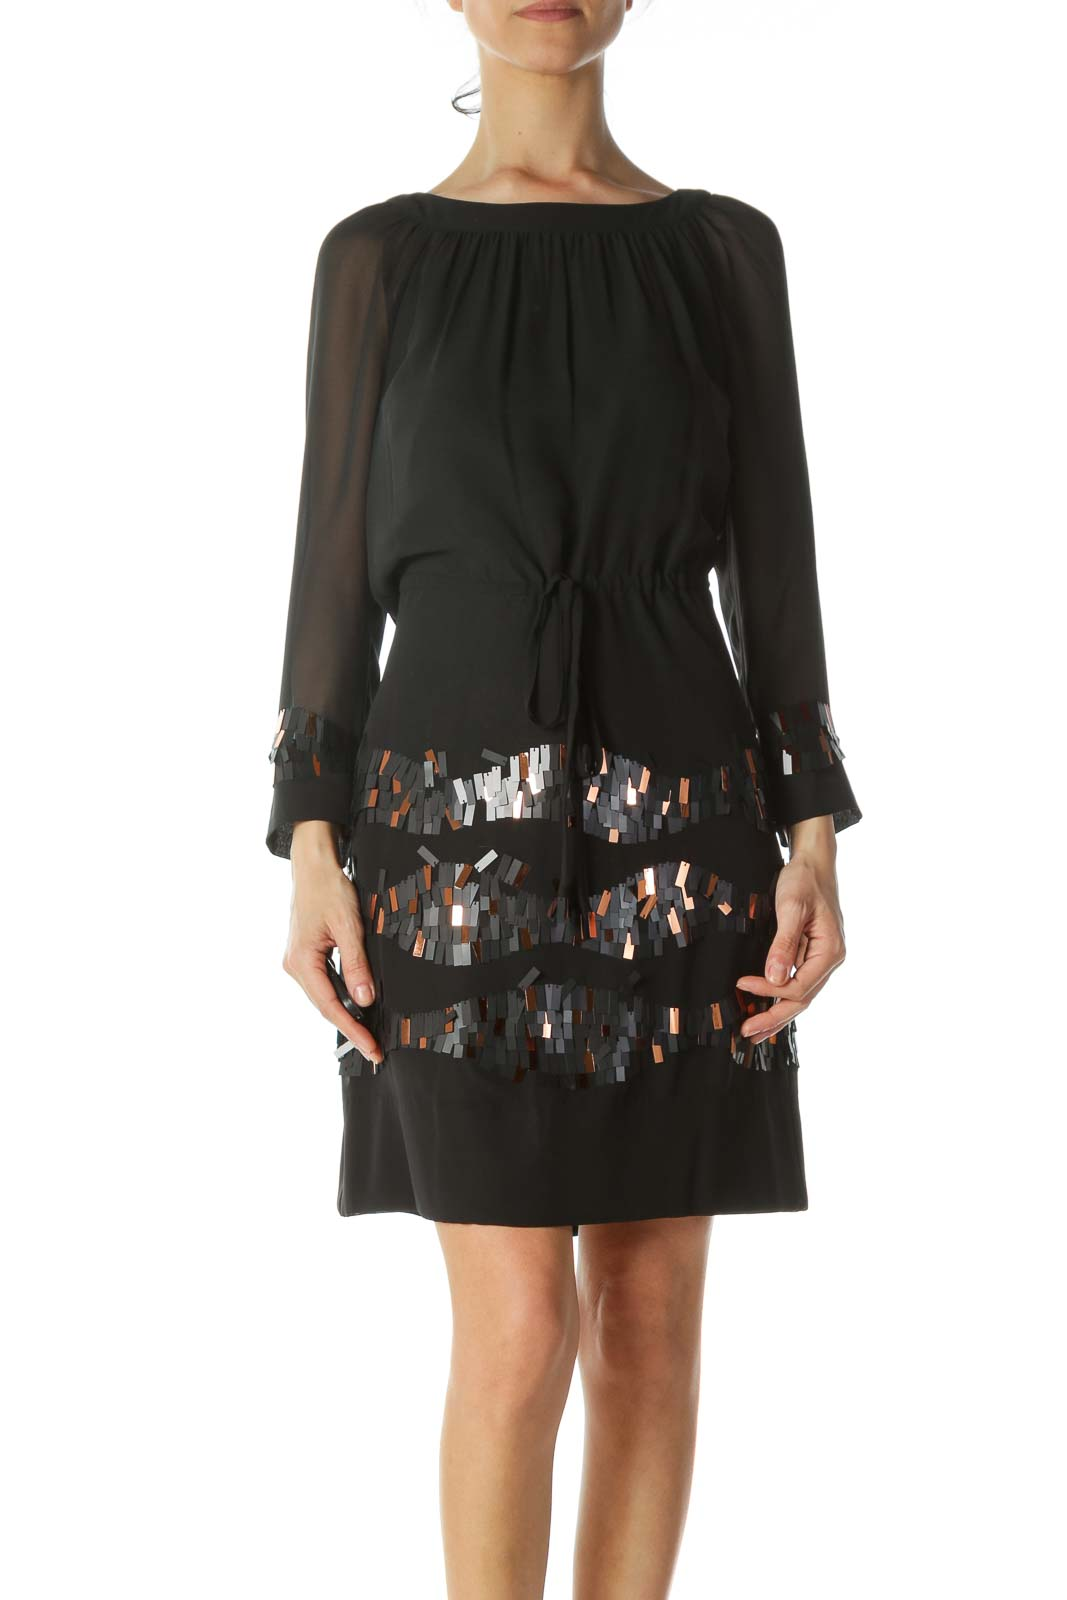 Black Sequined-Accents Drawstring-Waist Dress